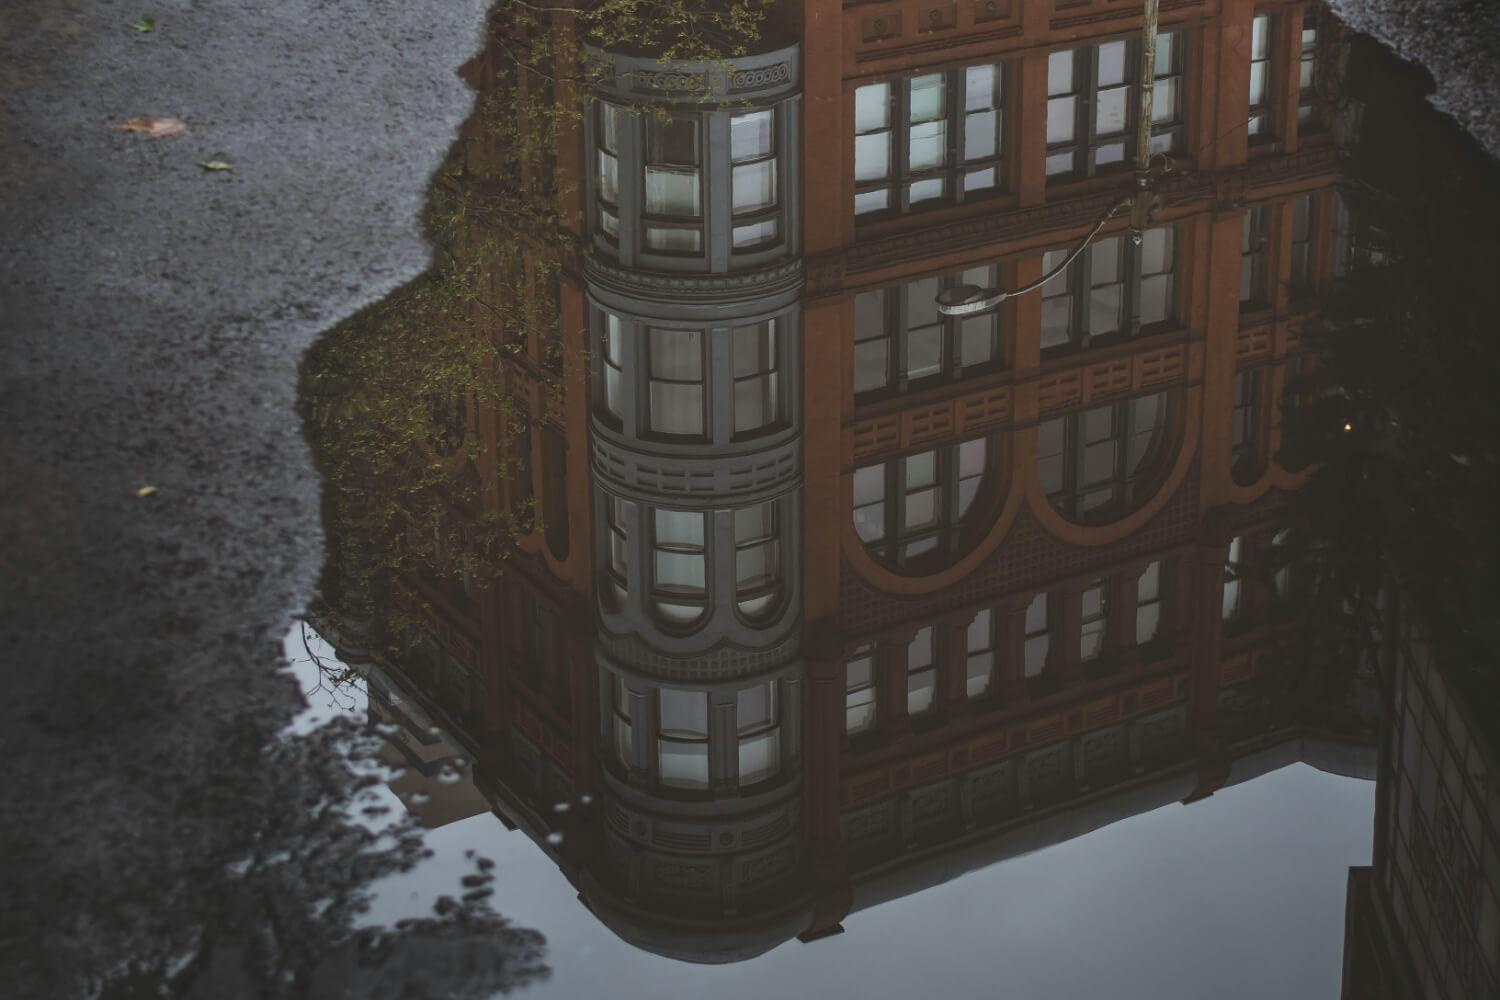 Building Reflected in a Puddle